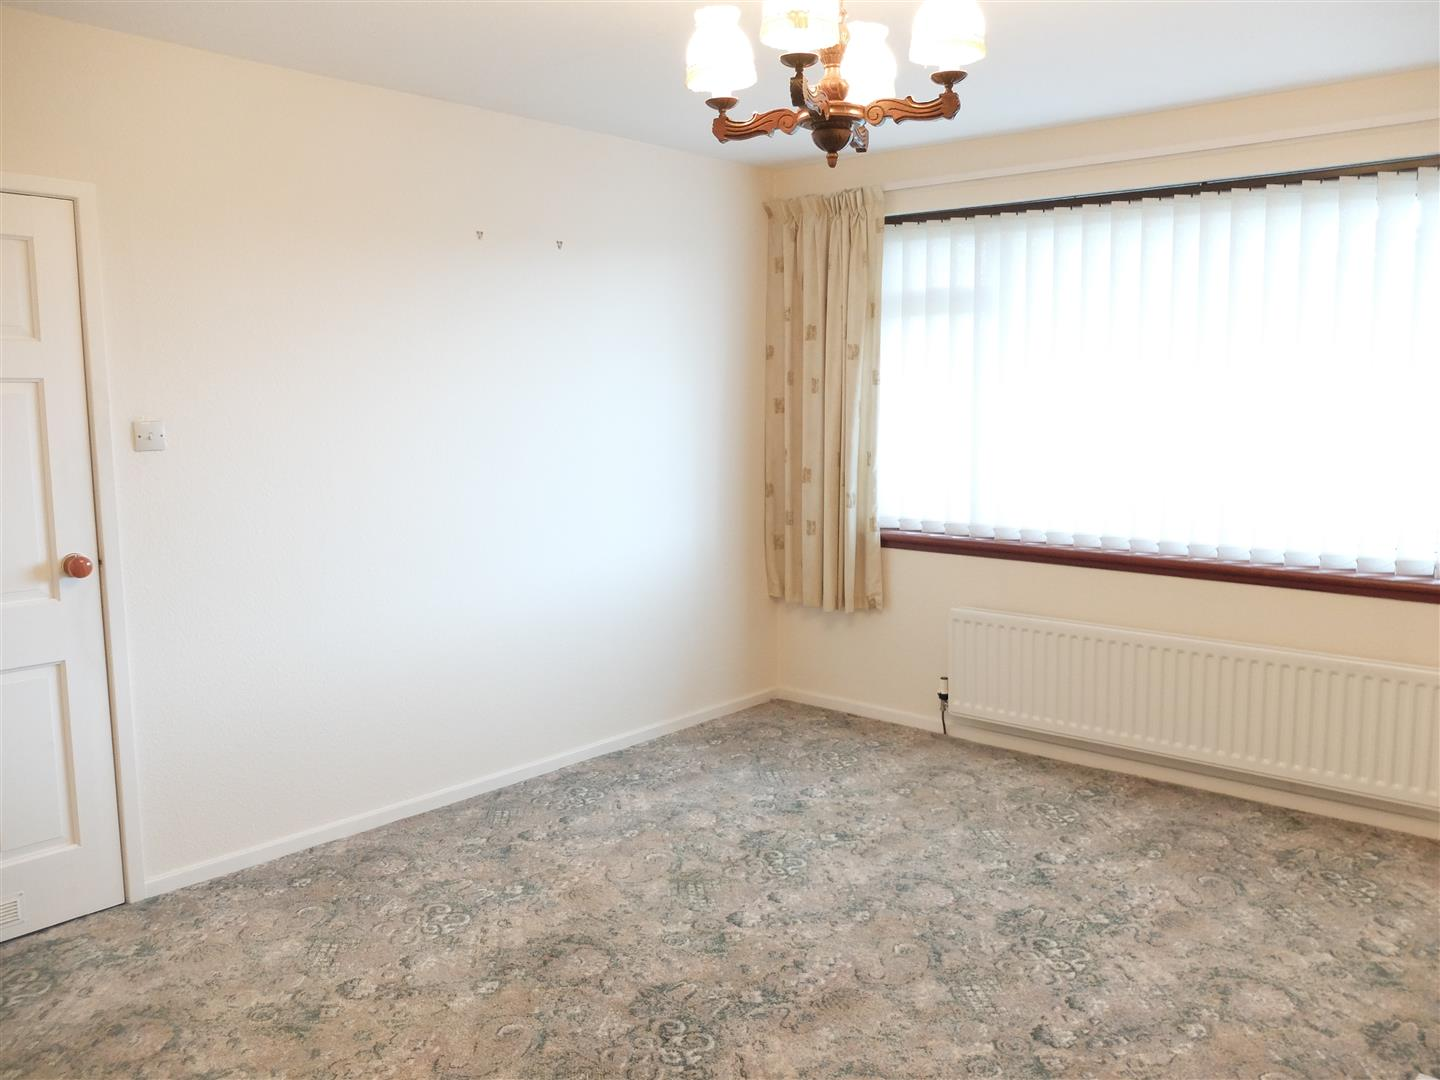 2 Bedrooms Bungalow - Semi Detached On Sale 4 Farbrow Road Carlisle